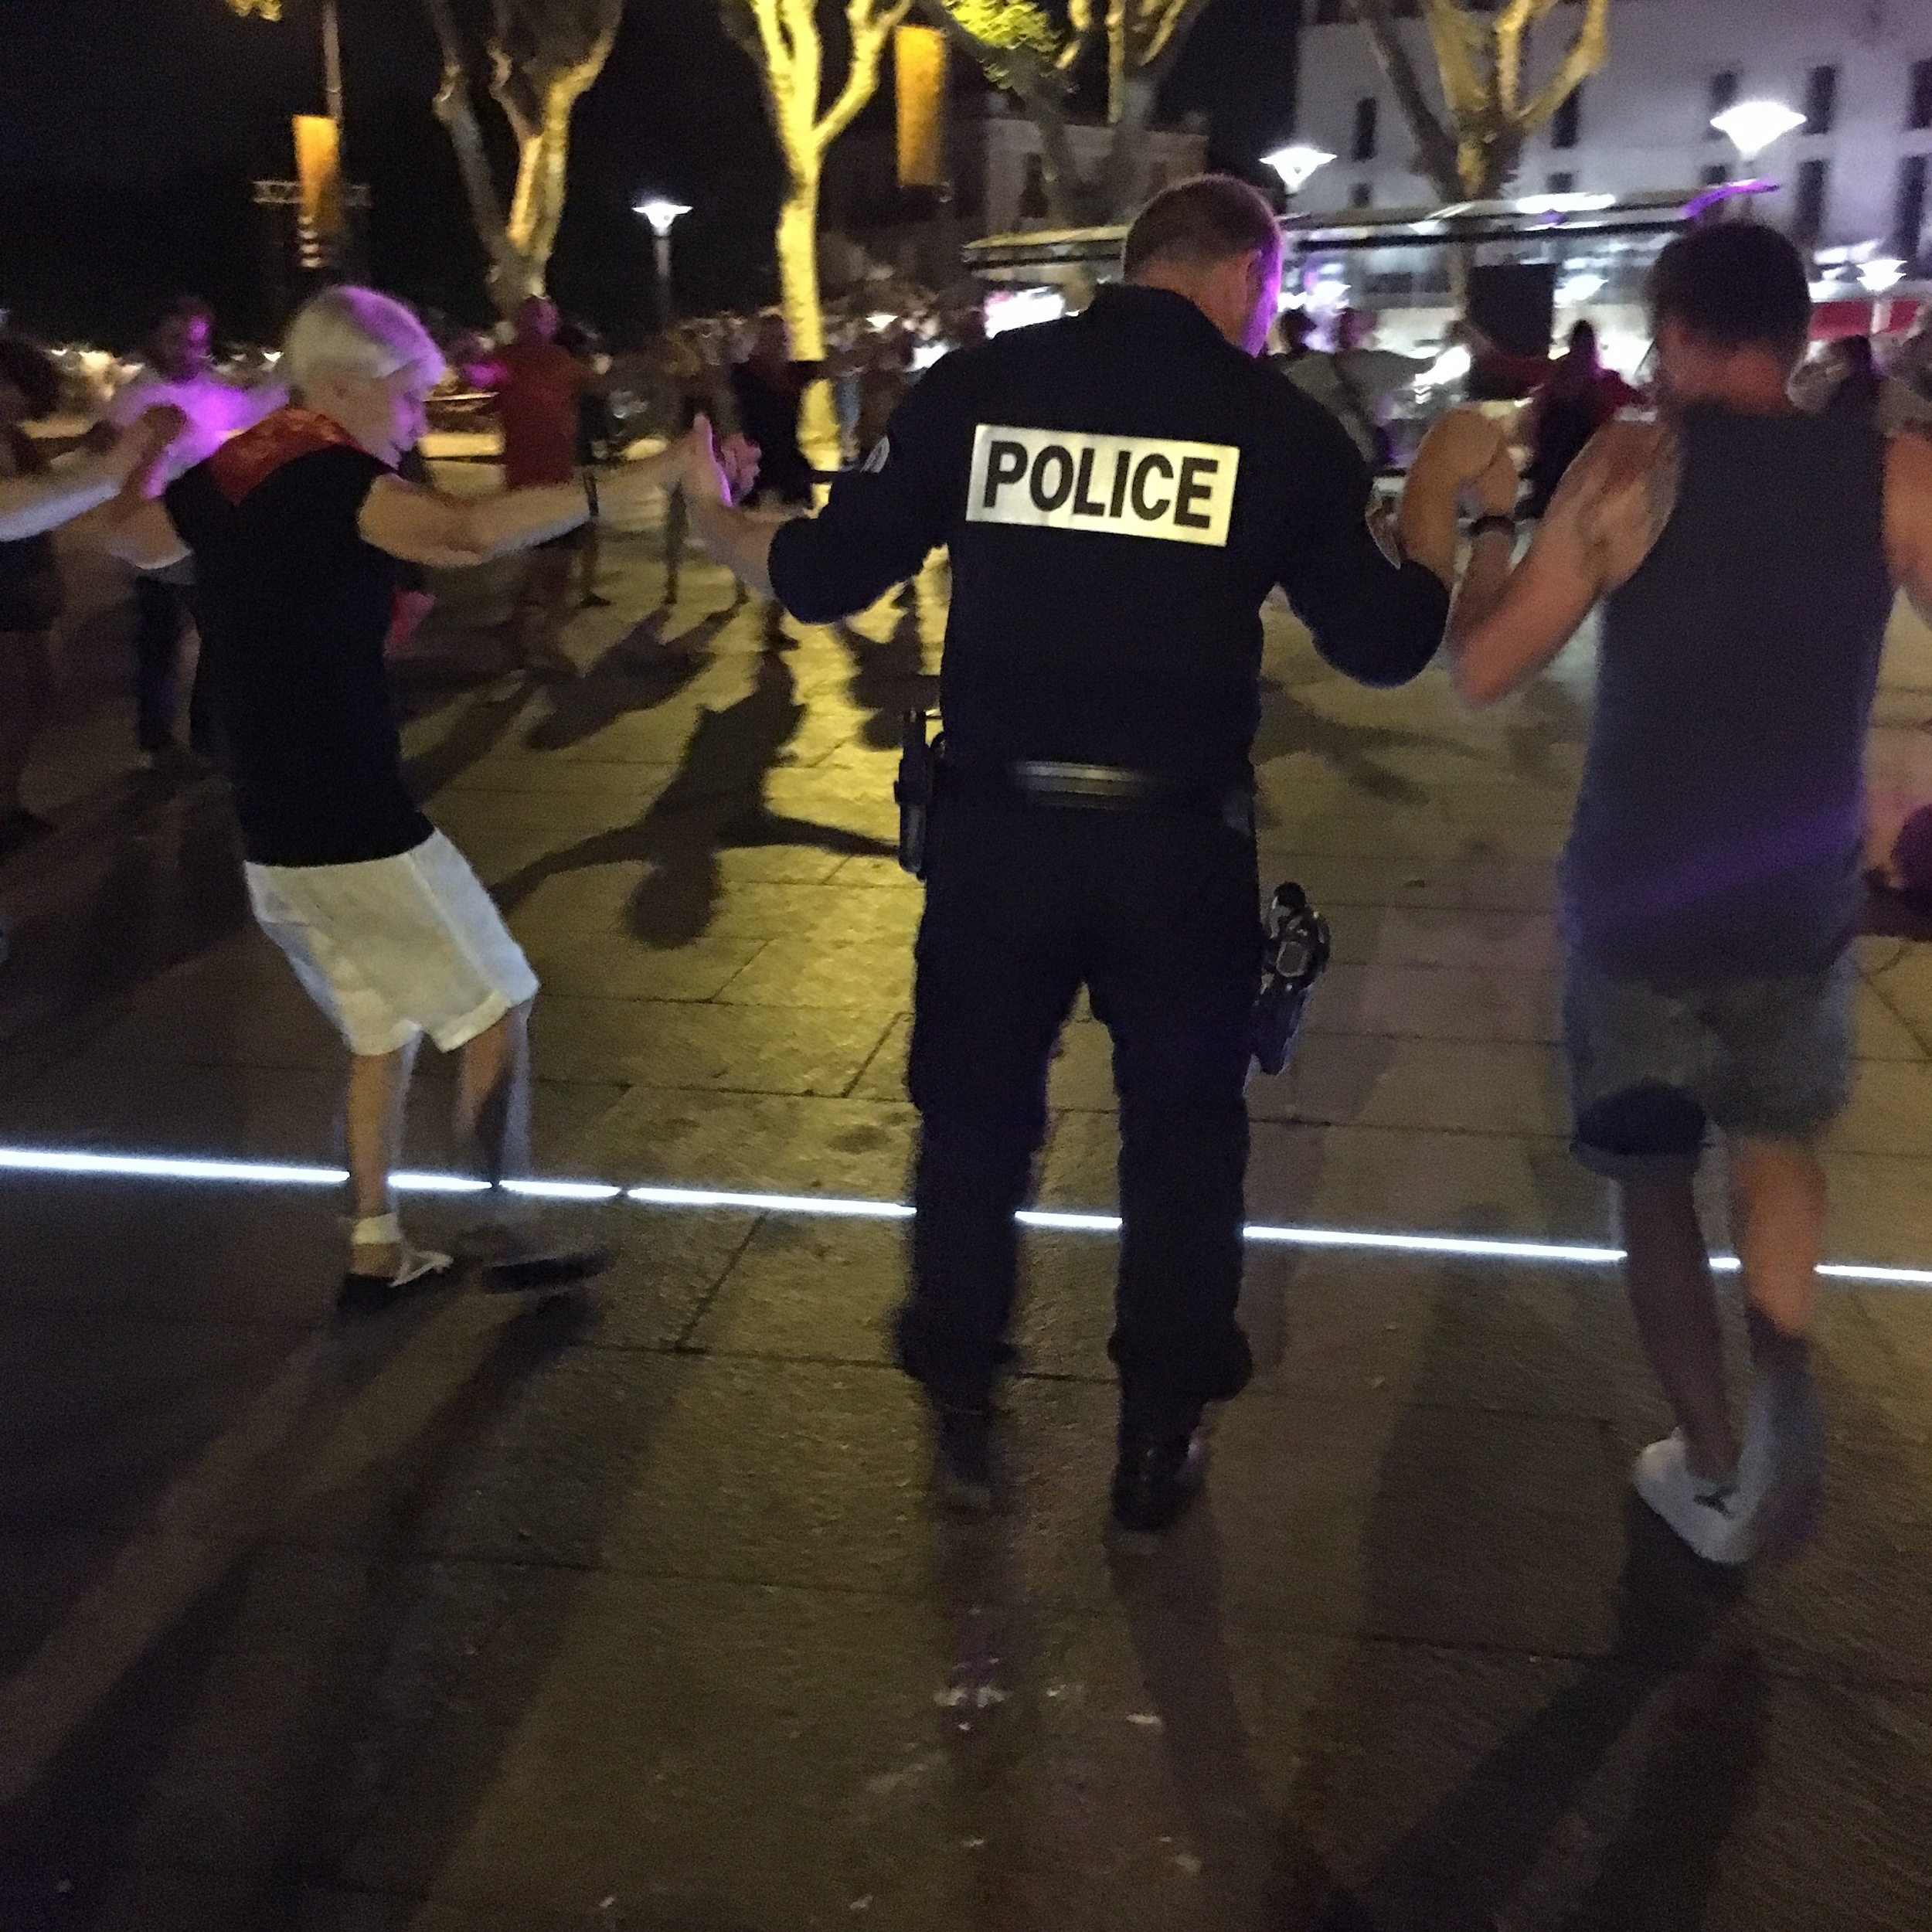 A dancing police officer in Perpignan, France.